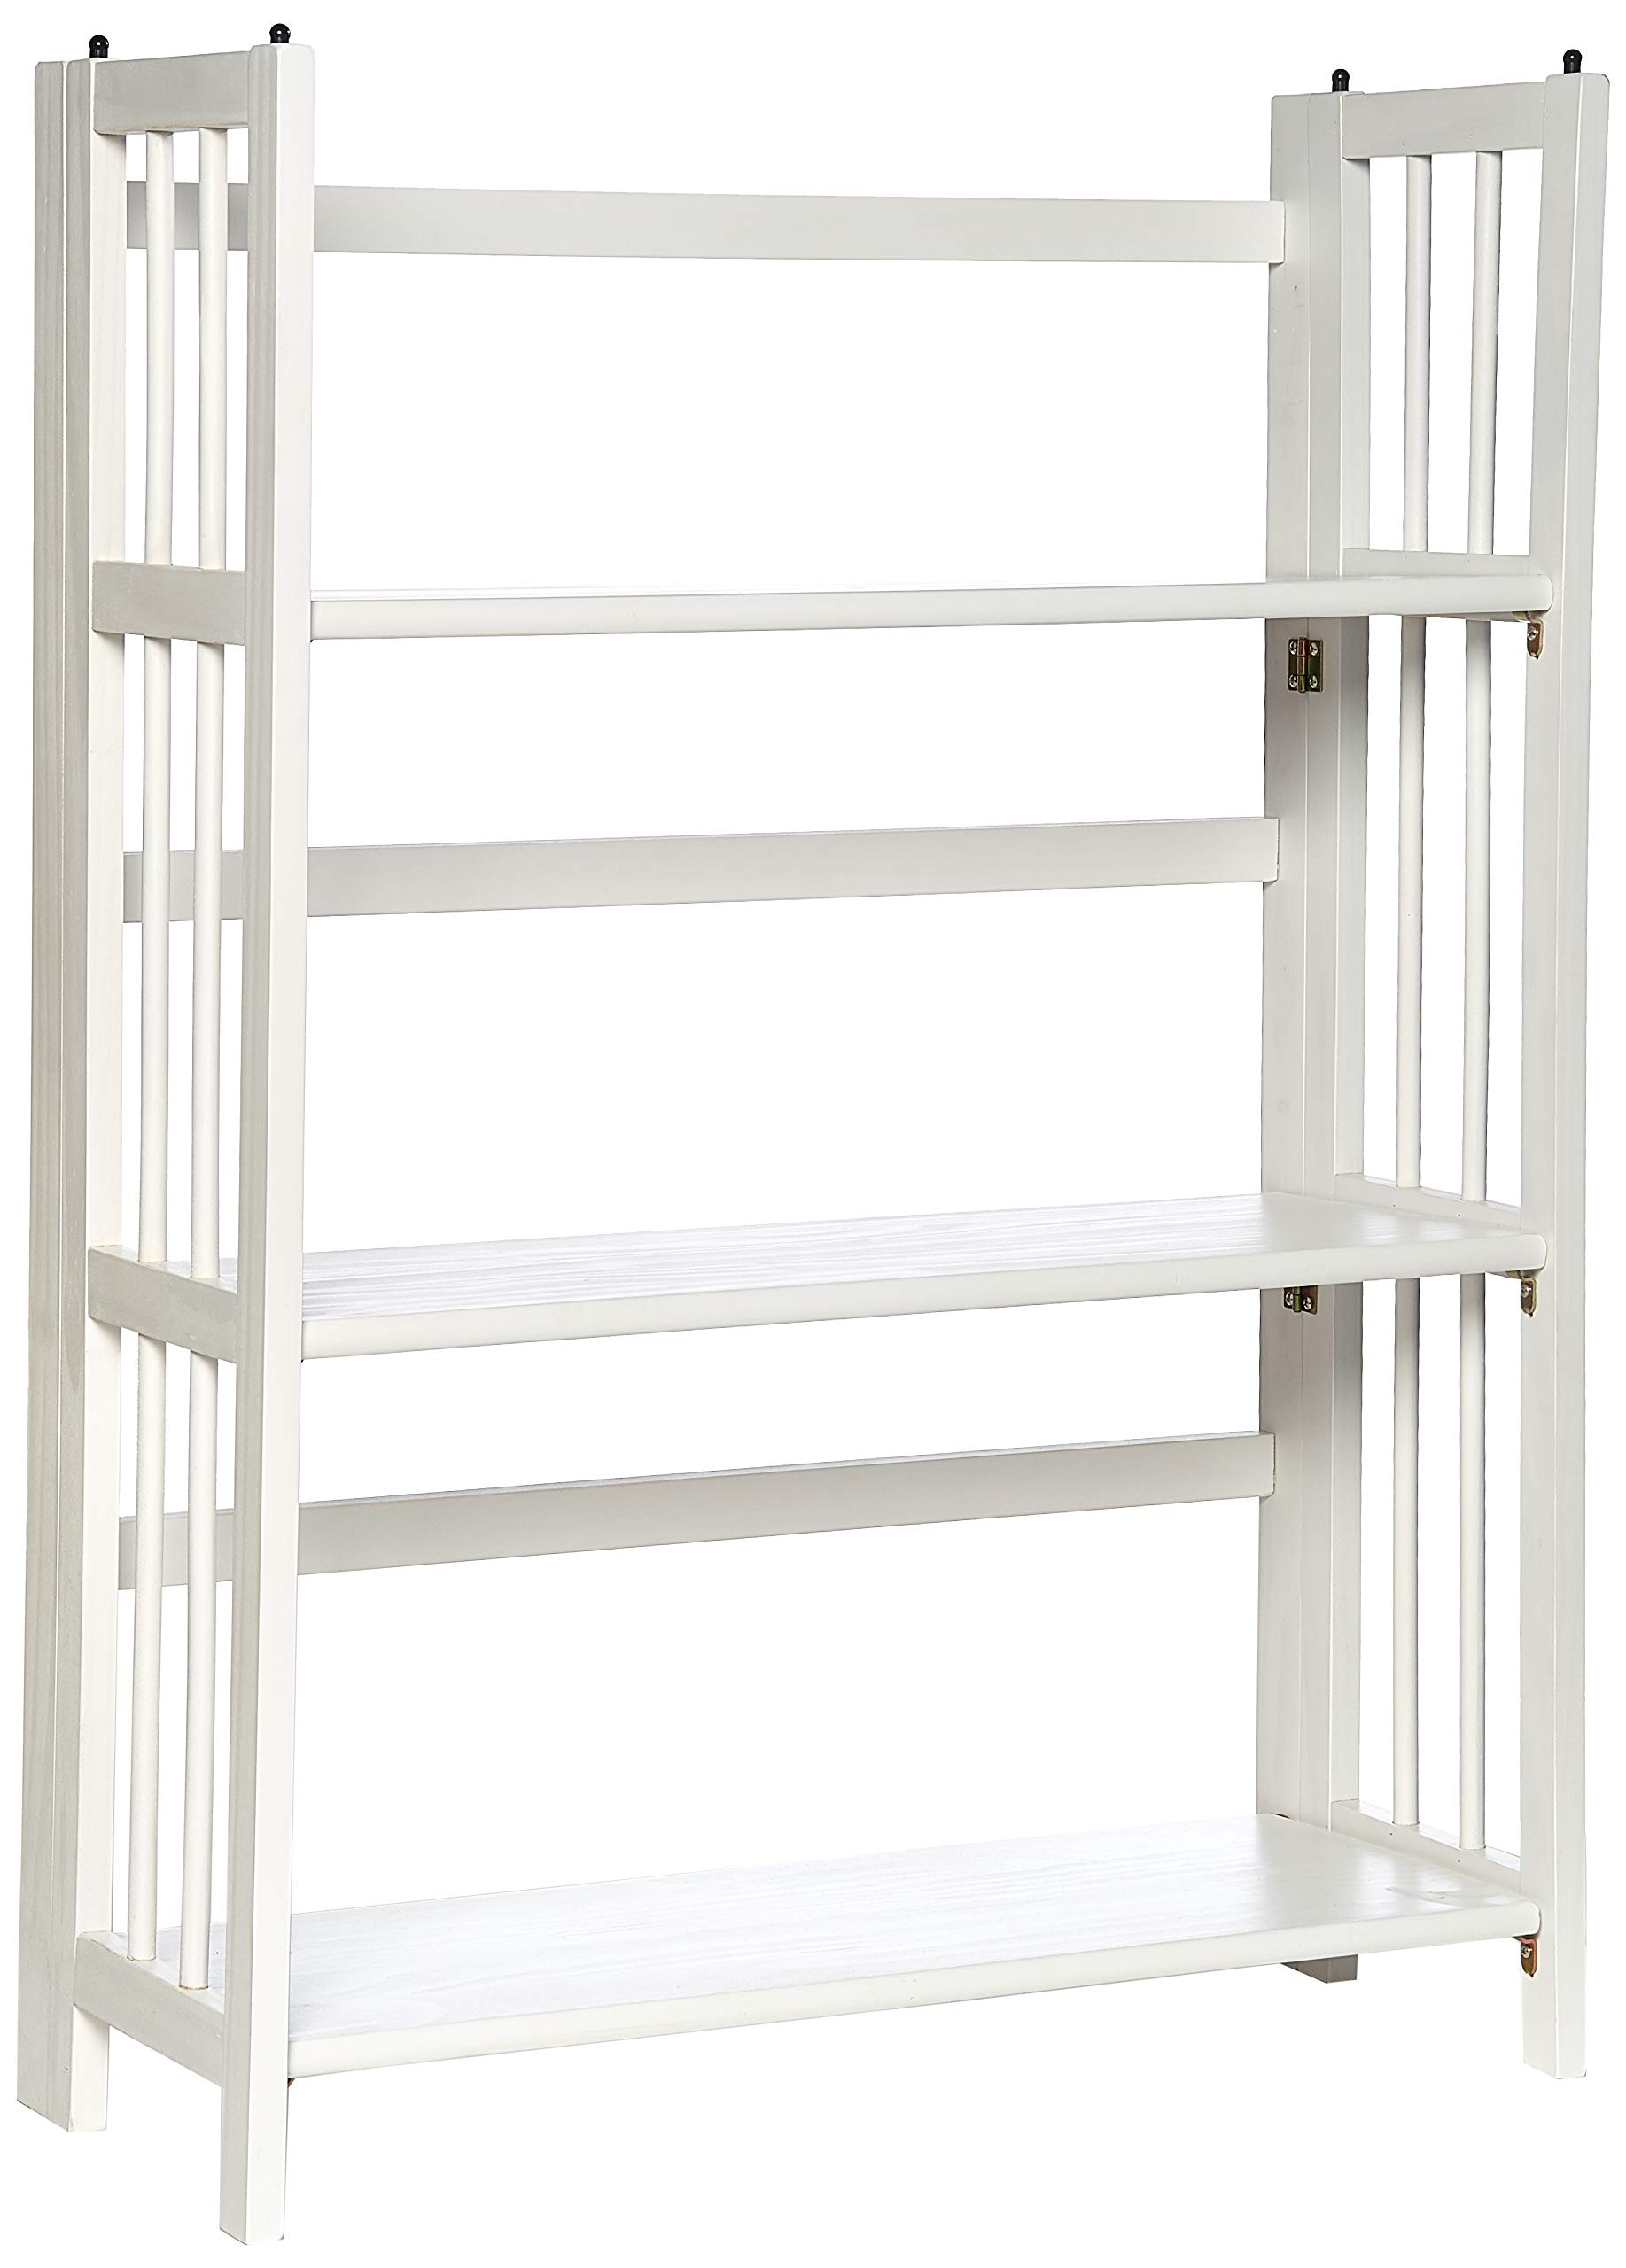 Yu Shan 3 Shelf Folding Stackable Bookcase, White